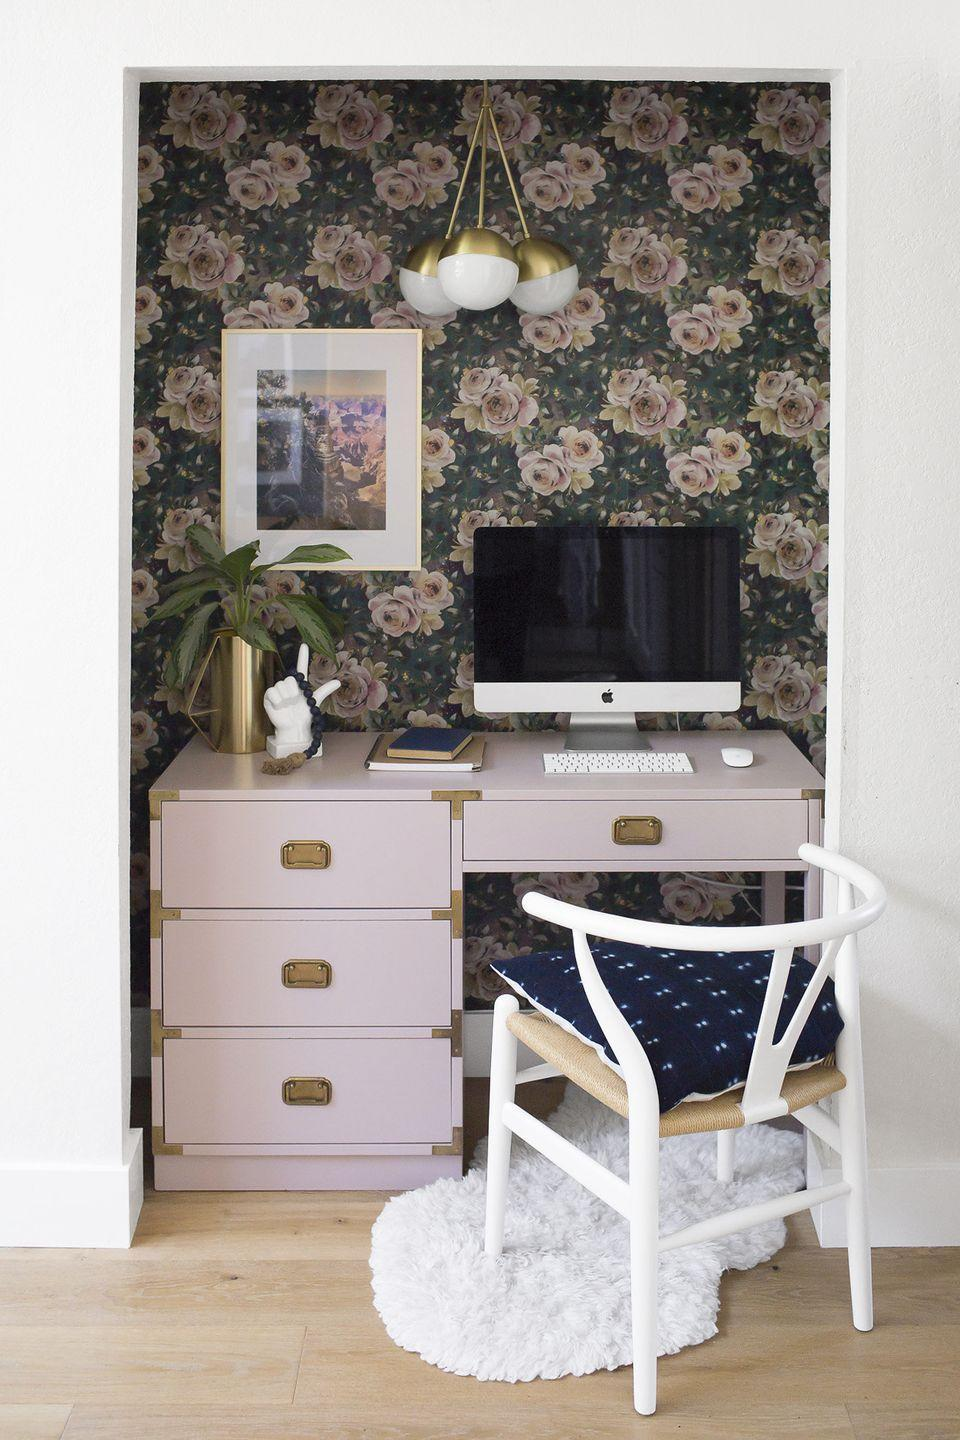 <p>No office in your floor plan? Make your own by removing the doors of an empty closet and turning it into a cozy office space. Decorate it like you would any other room: Add wallpaper, light fixtures, and decorative touches. </p>